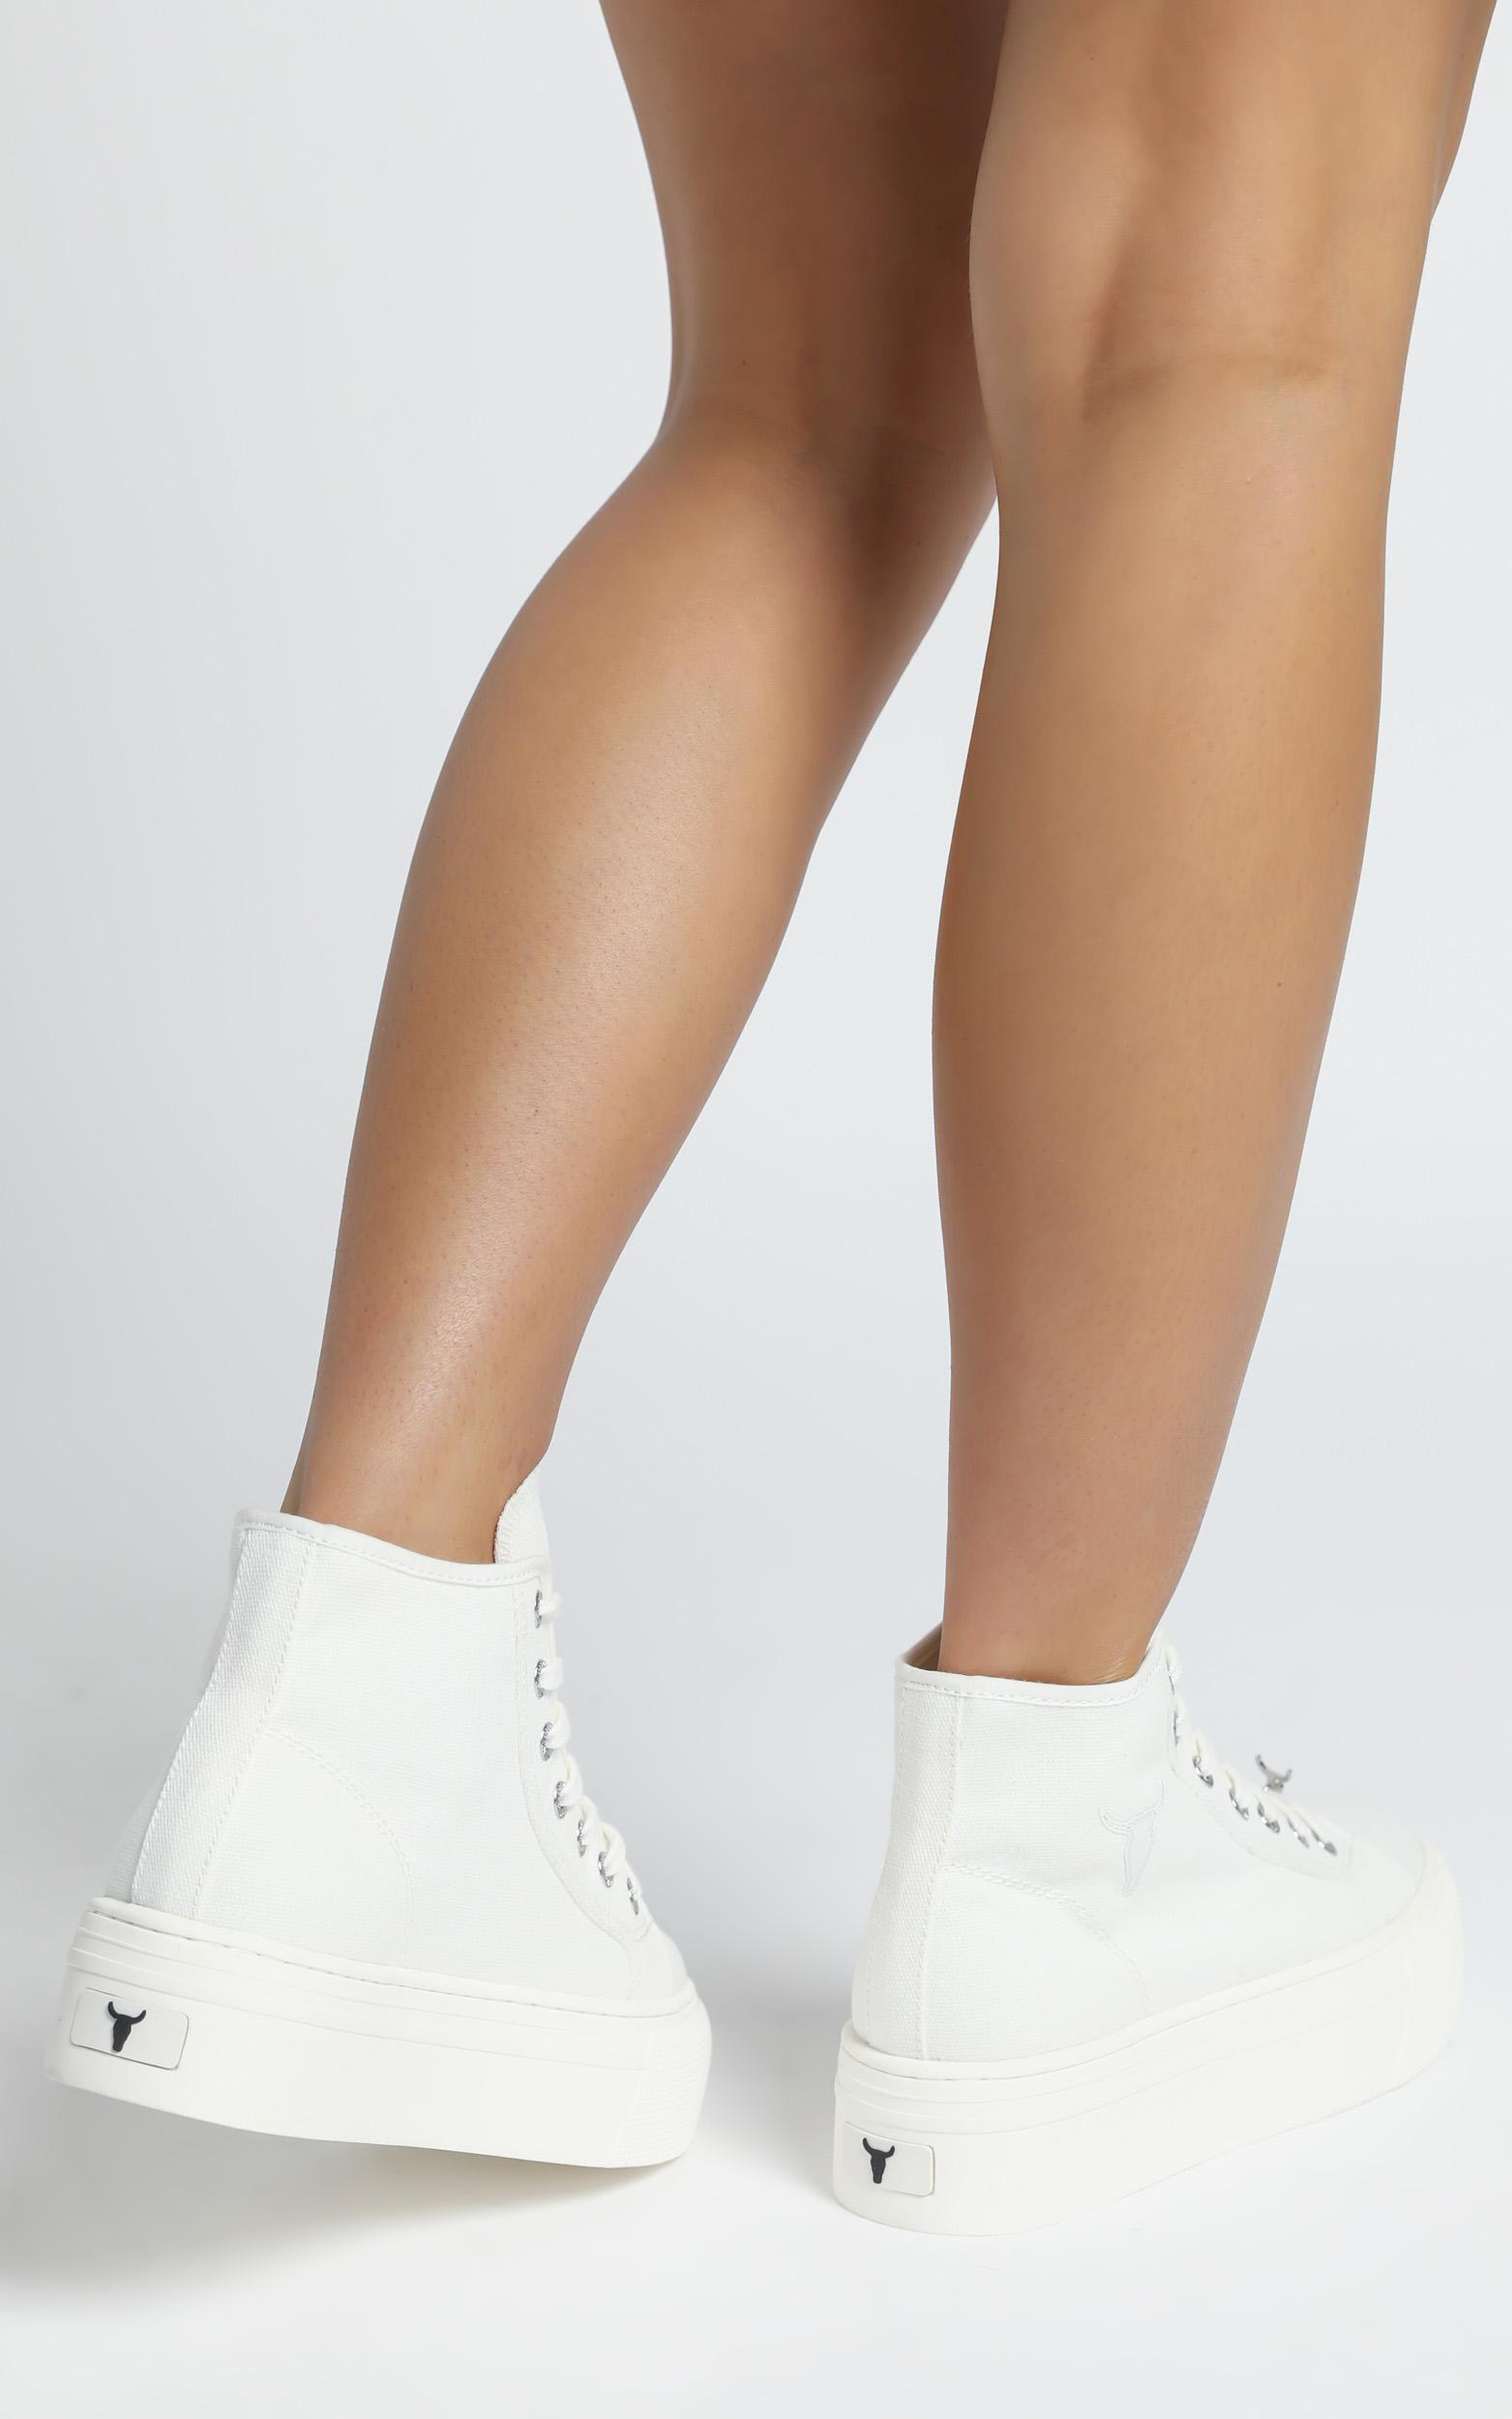 Windsor Smith - Runaway Sneakers in White Canvas - 6, WHT1, hi-res image number null